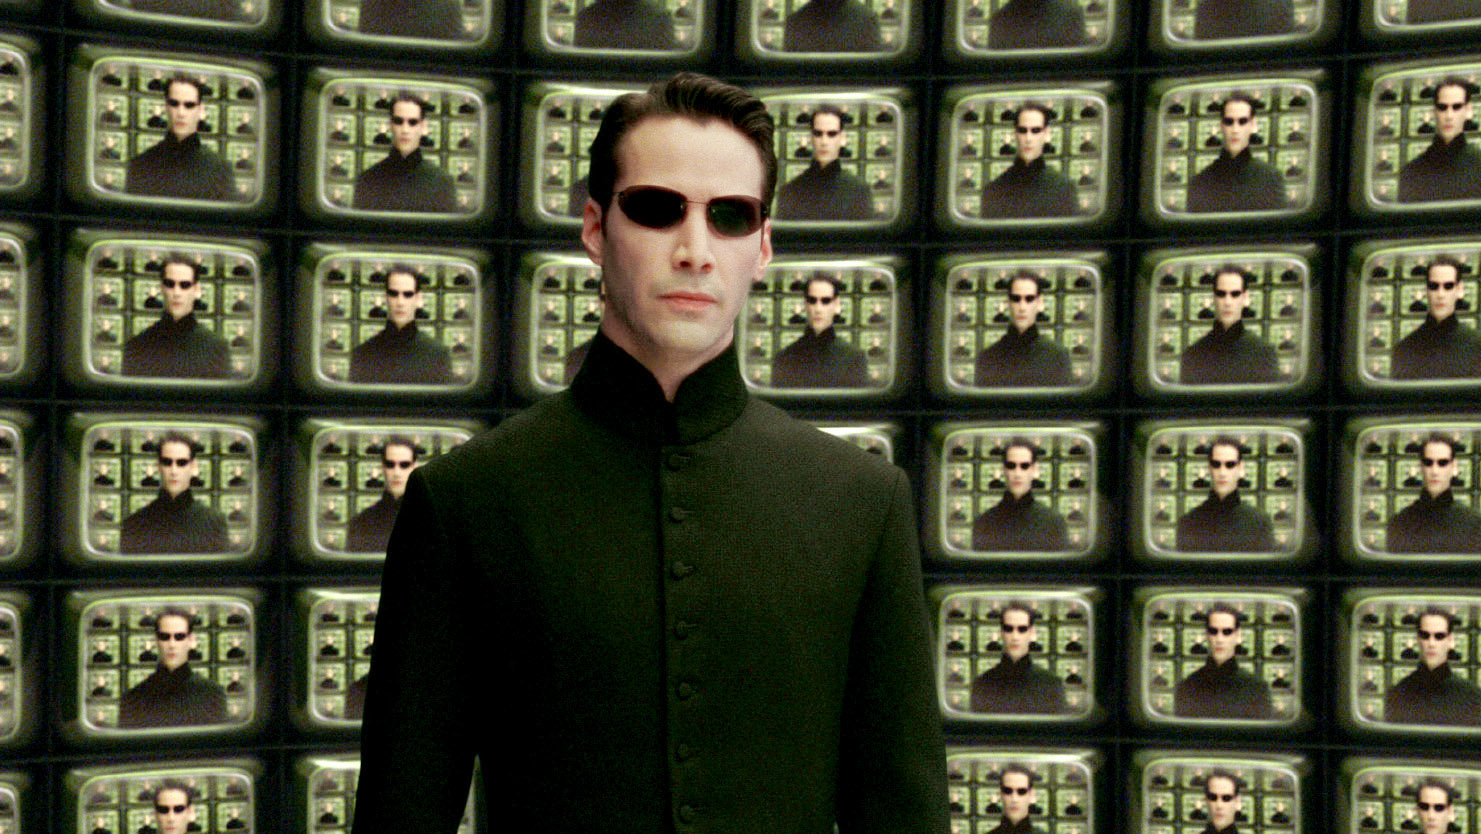 Which are the Best Matrix Movies to Watch? Here is the List in Serial Order